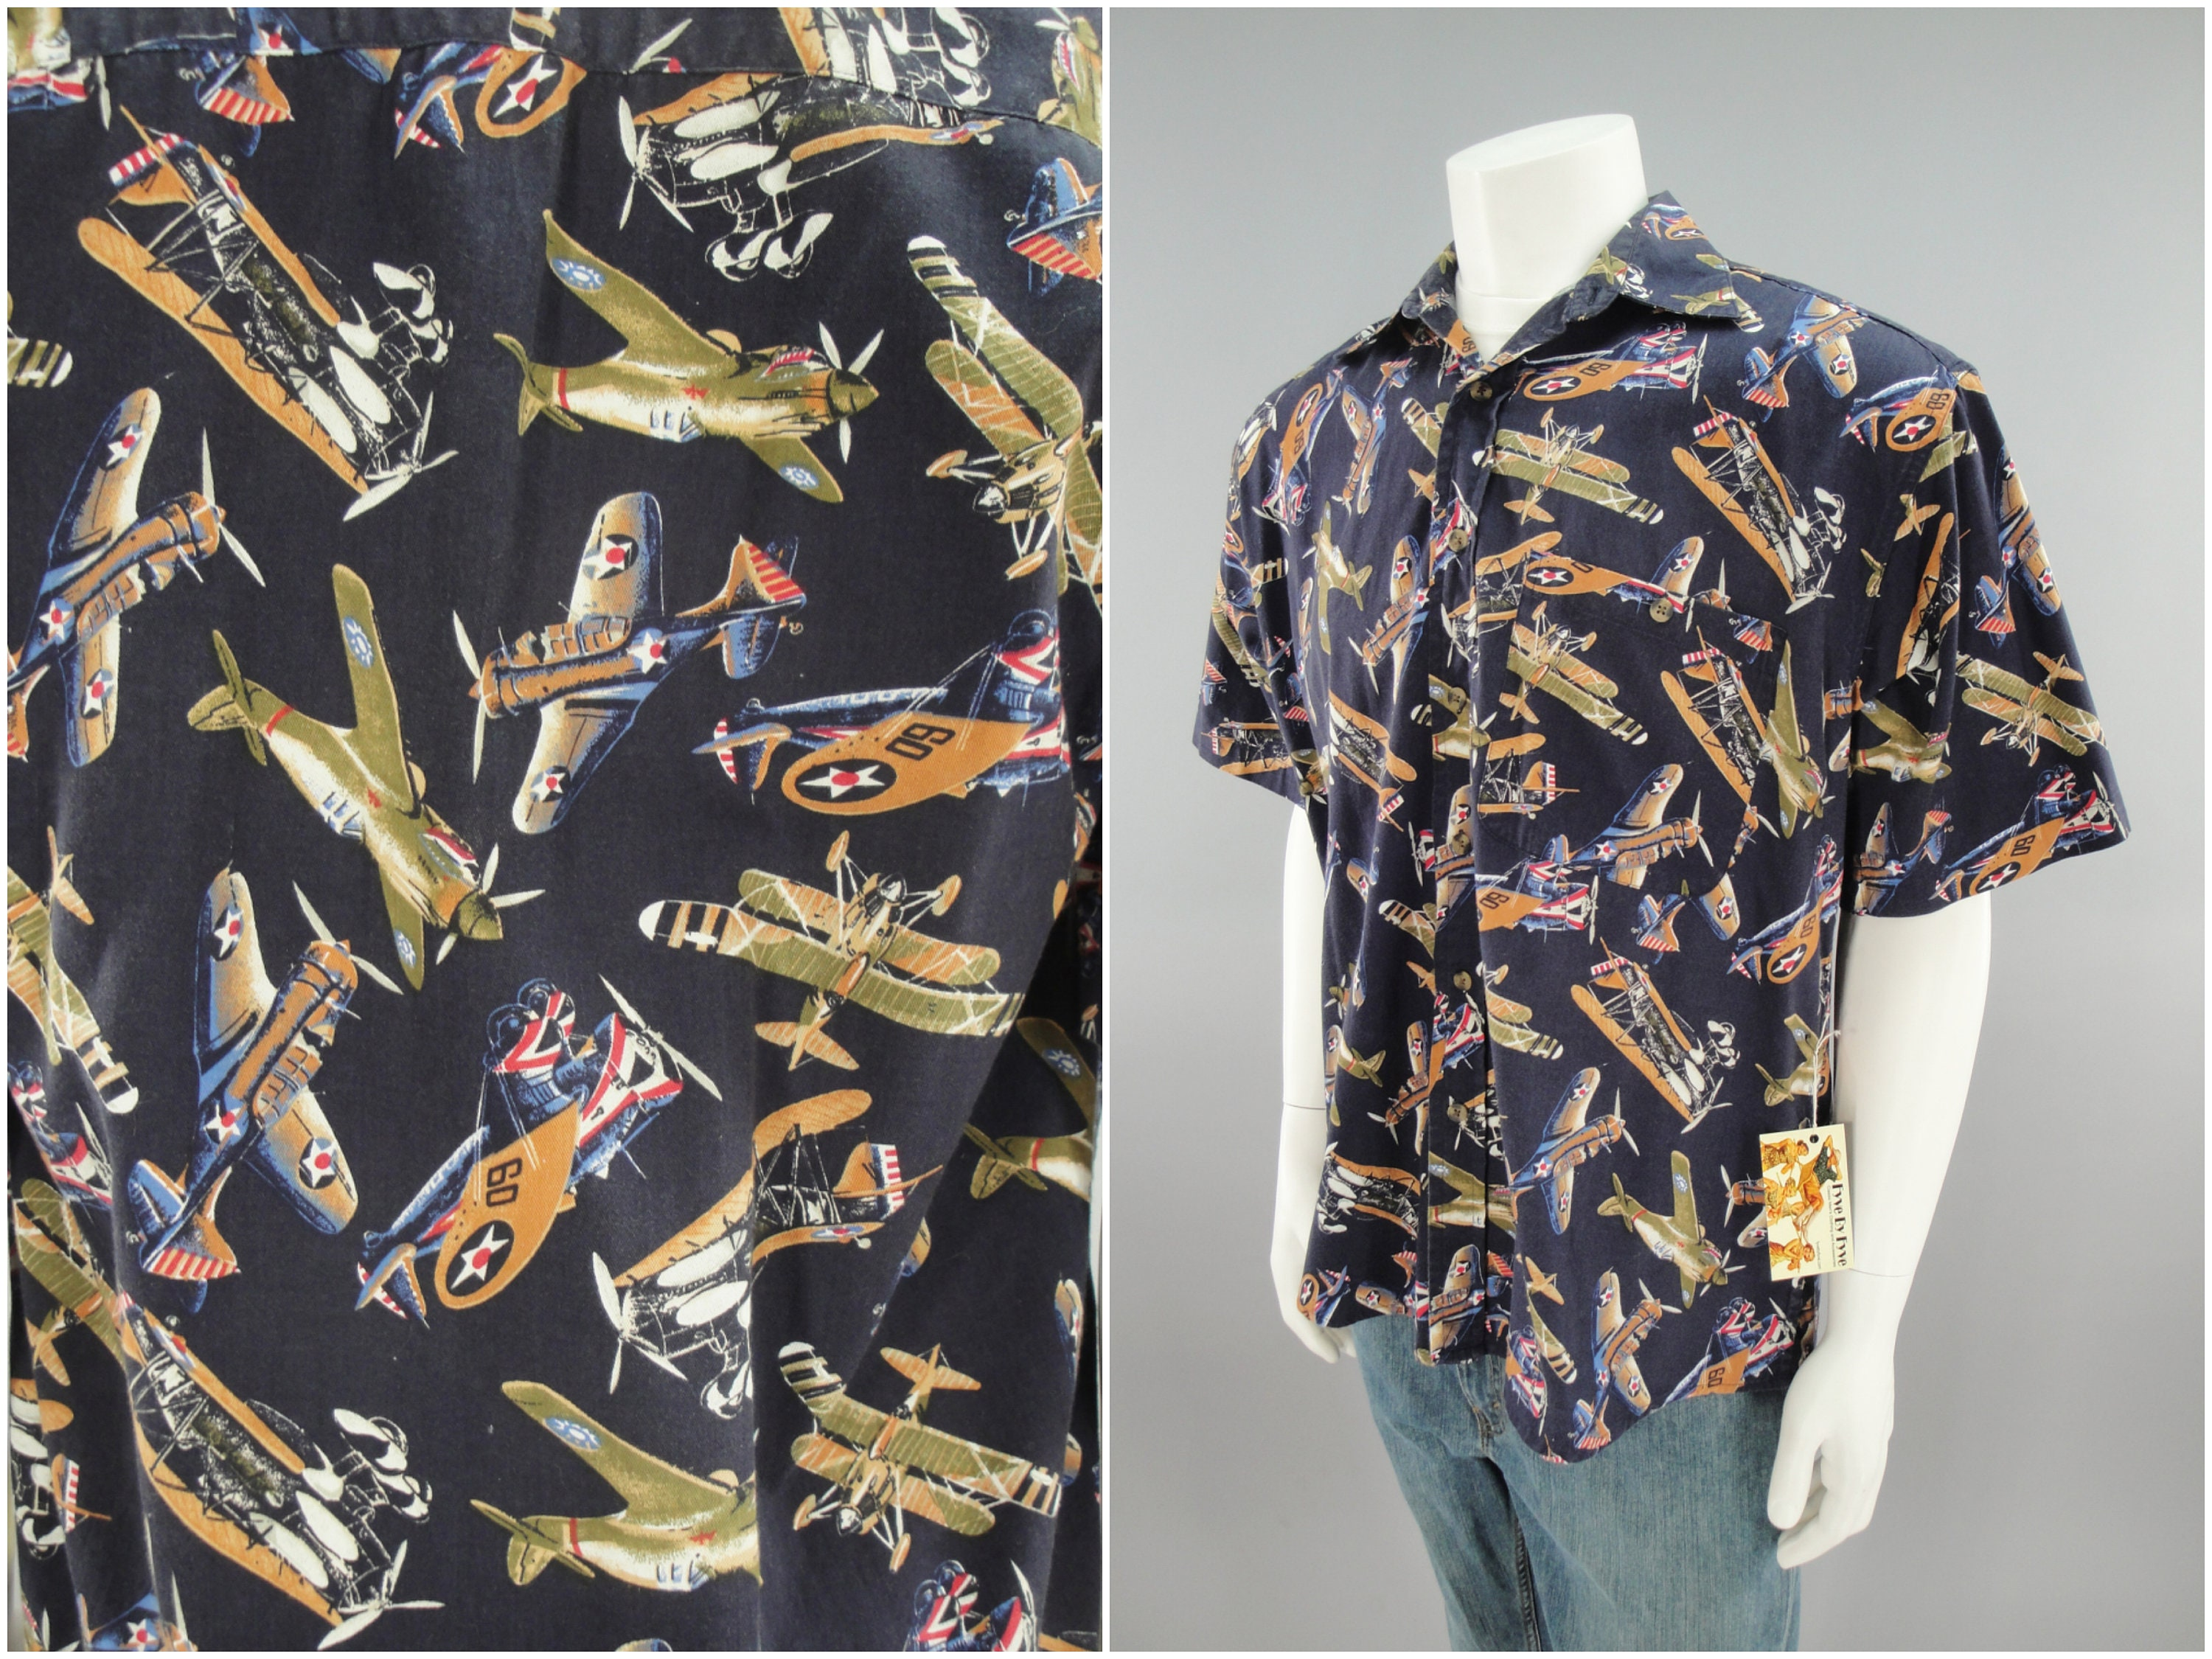 1940s Men's Shirts, Sweaters, Vests Smithsonian Ww2 Vintage Warbirds Hawaiian Style Shirt, Mens Size Xl 46, Classic 1930S - 1940S Aviation Theme Aircraft Casual Lounge Shirt $0.00 AT vintagedancer.com